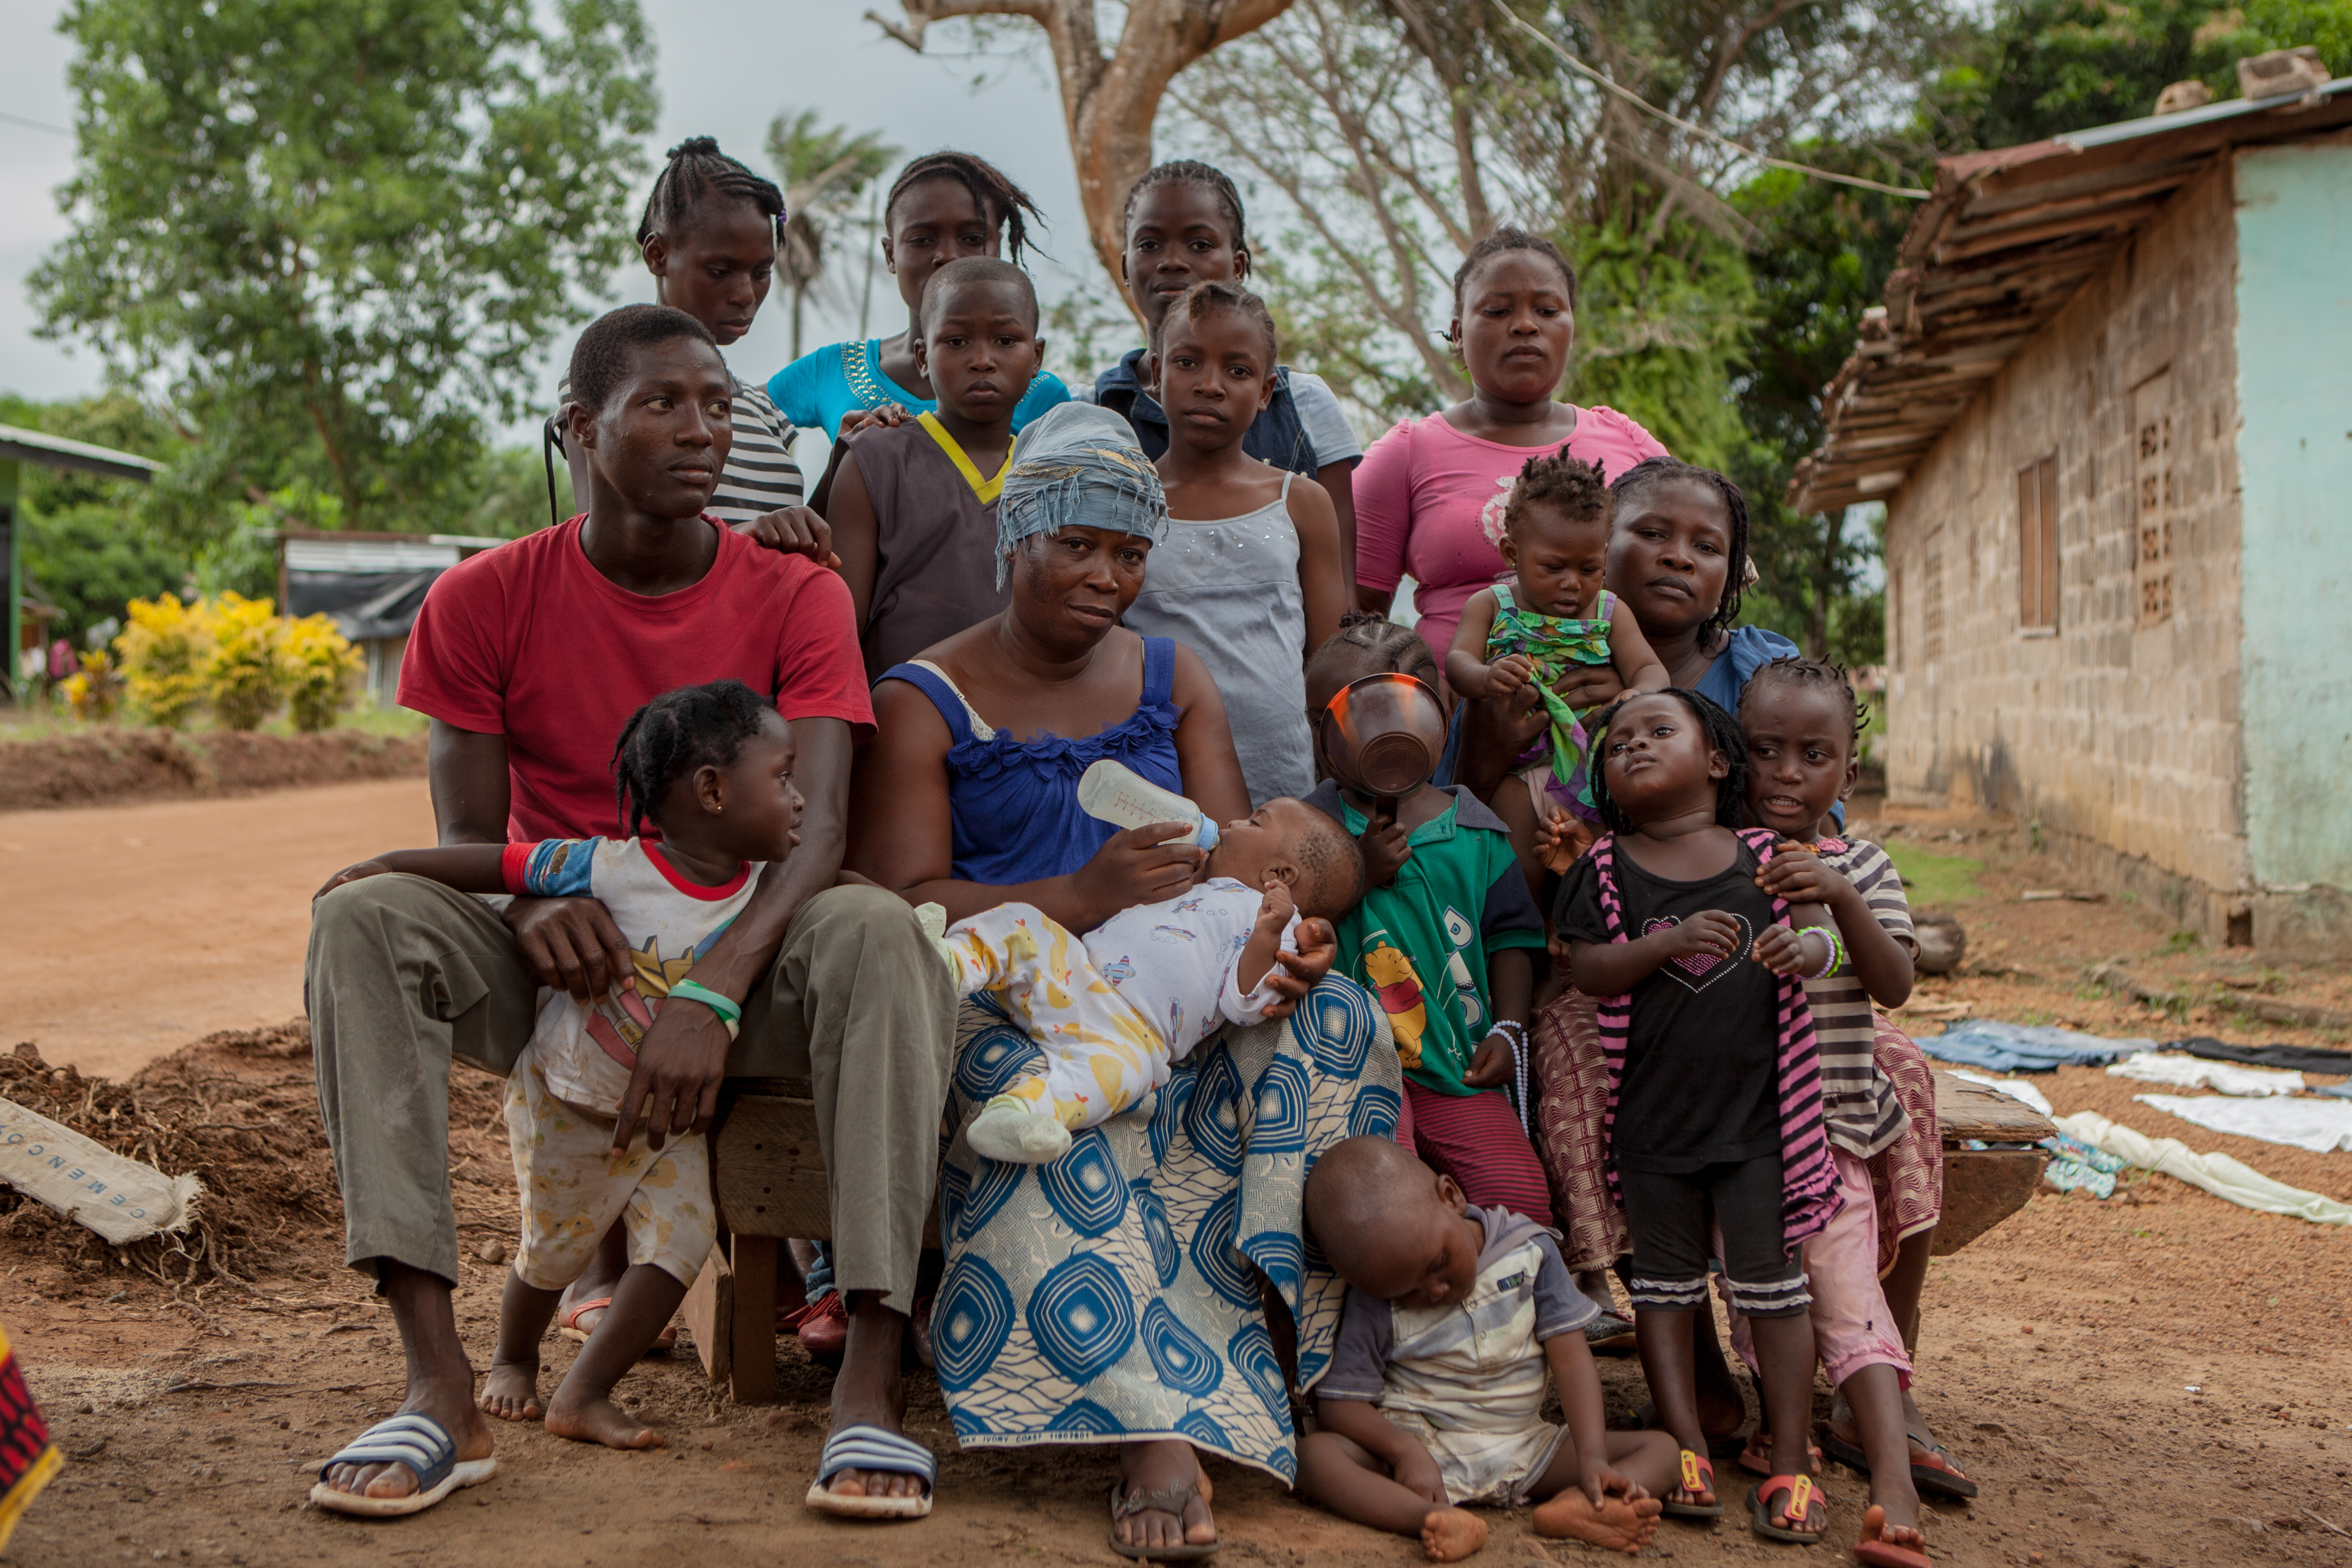 Dudu Kromah's husband died from Ebola. She is looking after ten children, many of them orphans including a 3-month-old baby. She has no income.